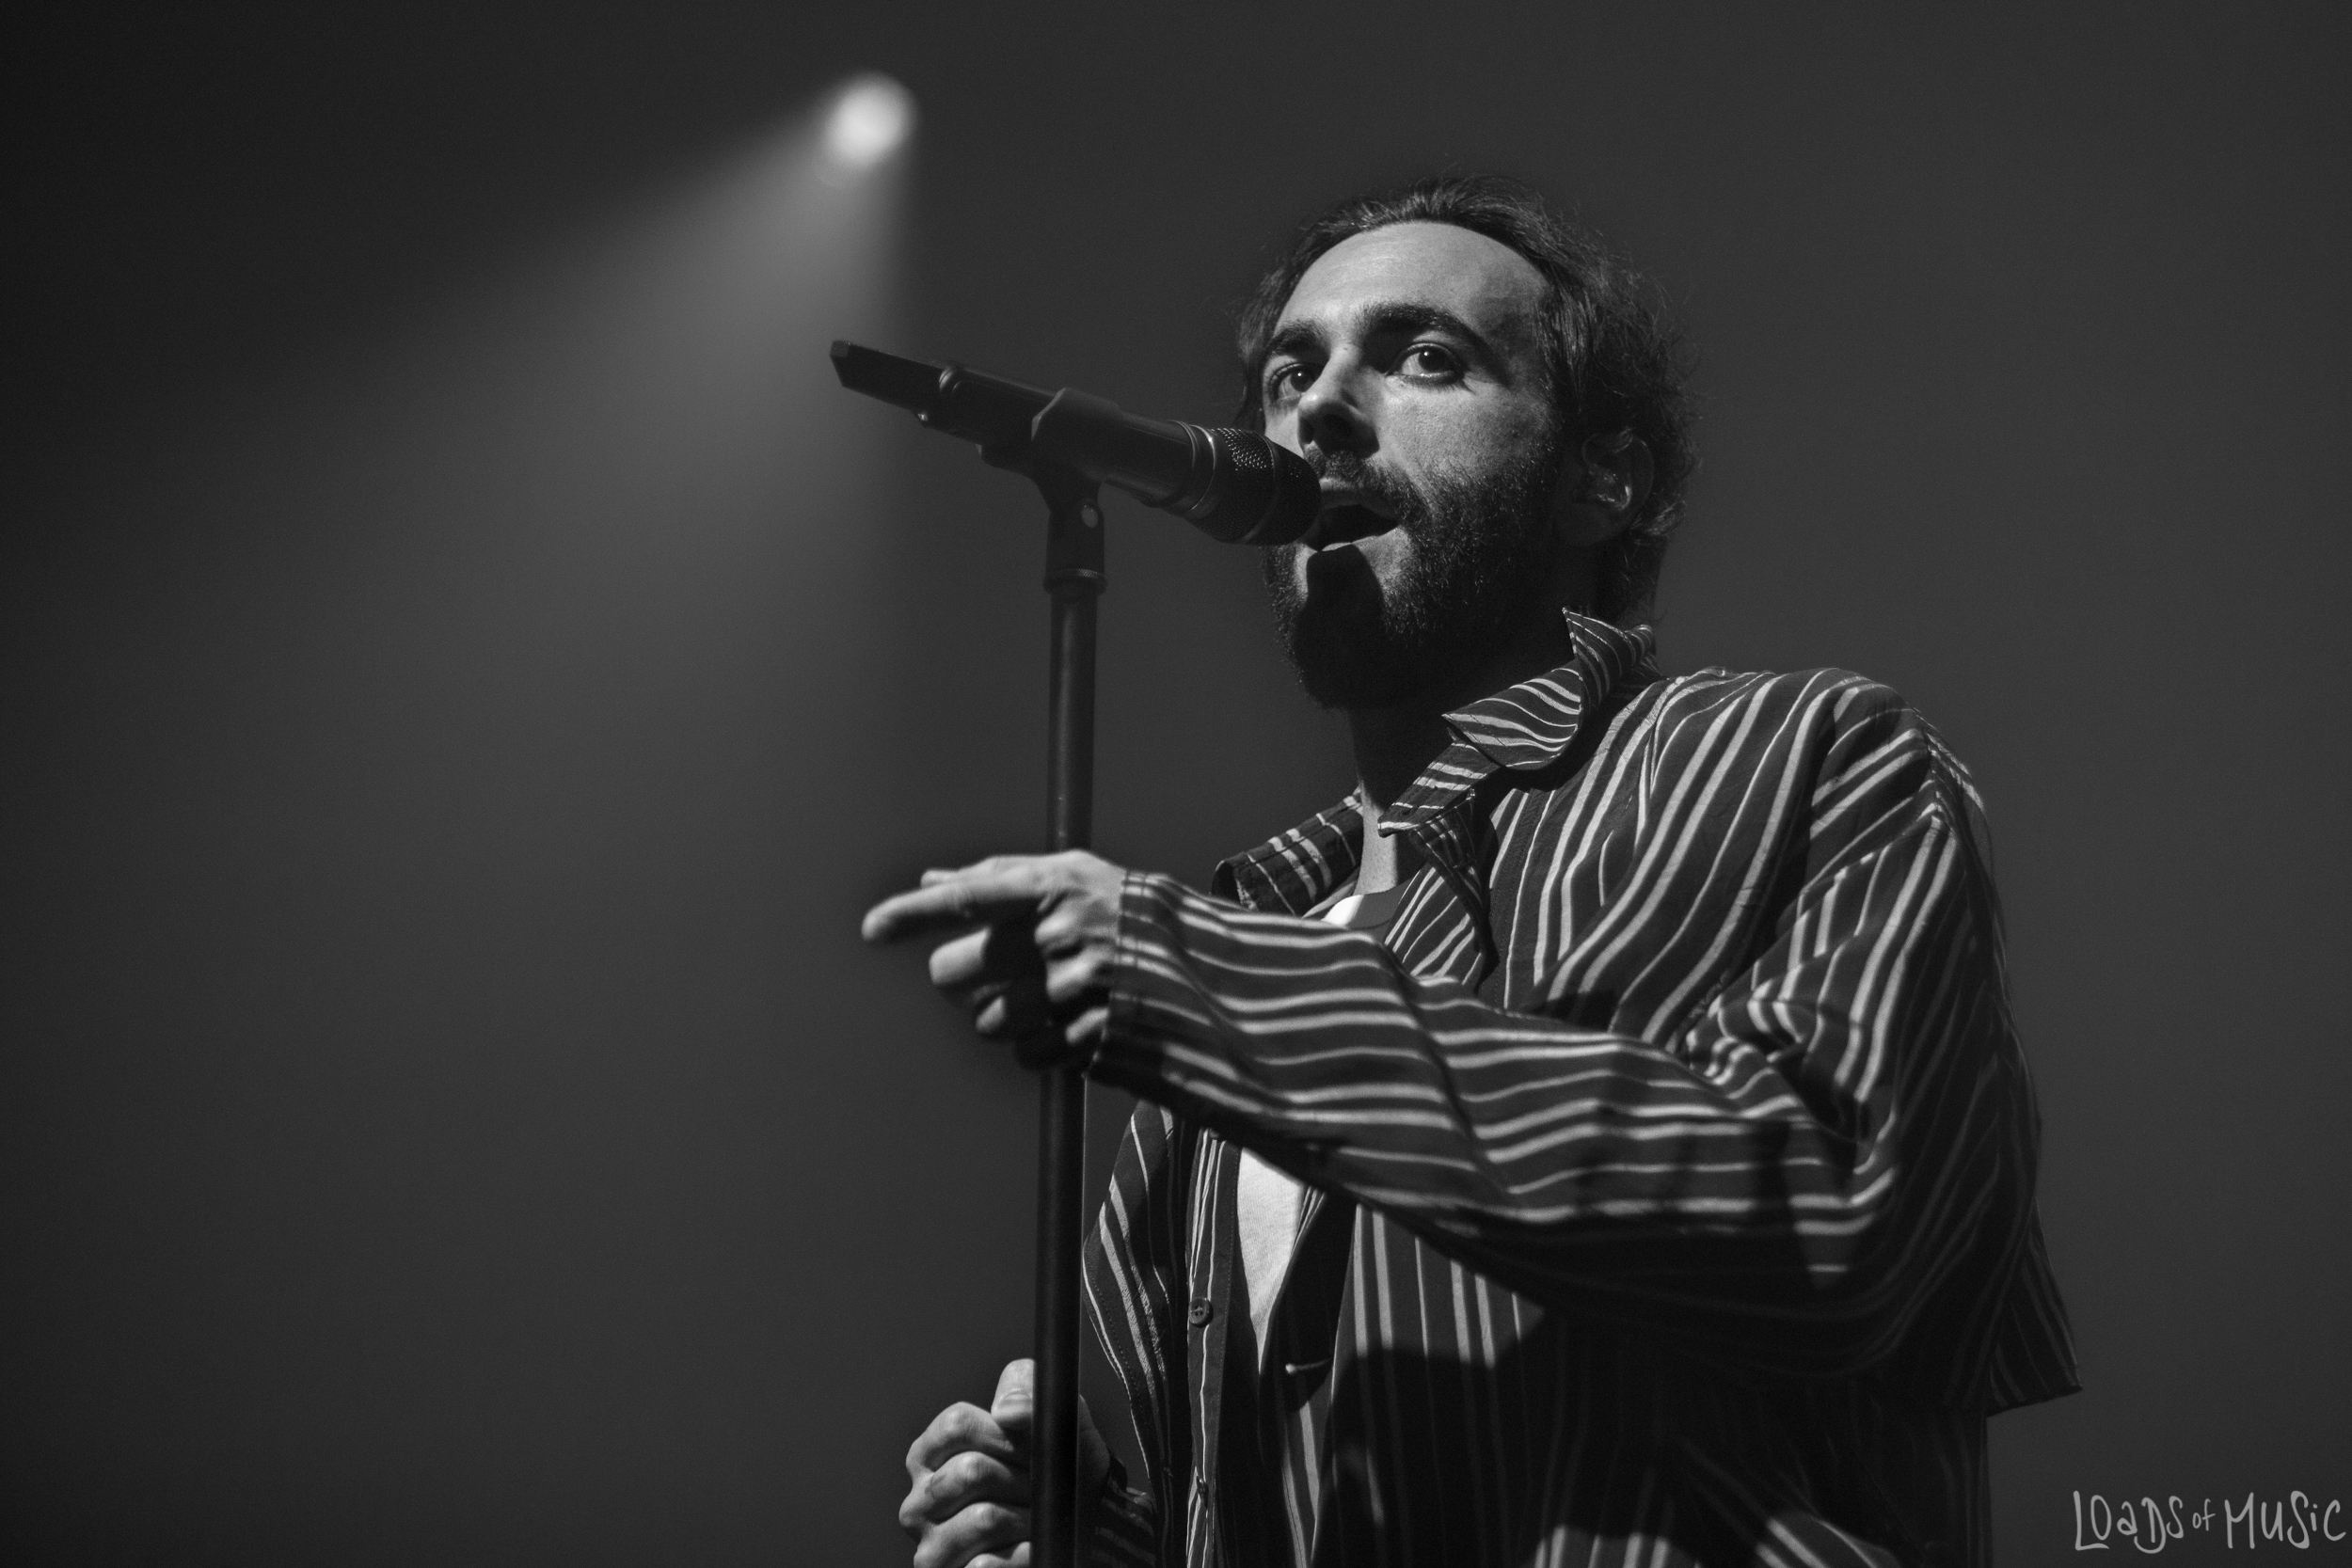 Marco_Mengoni_SamsungHall_21